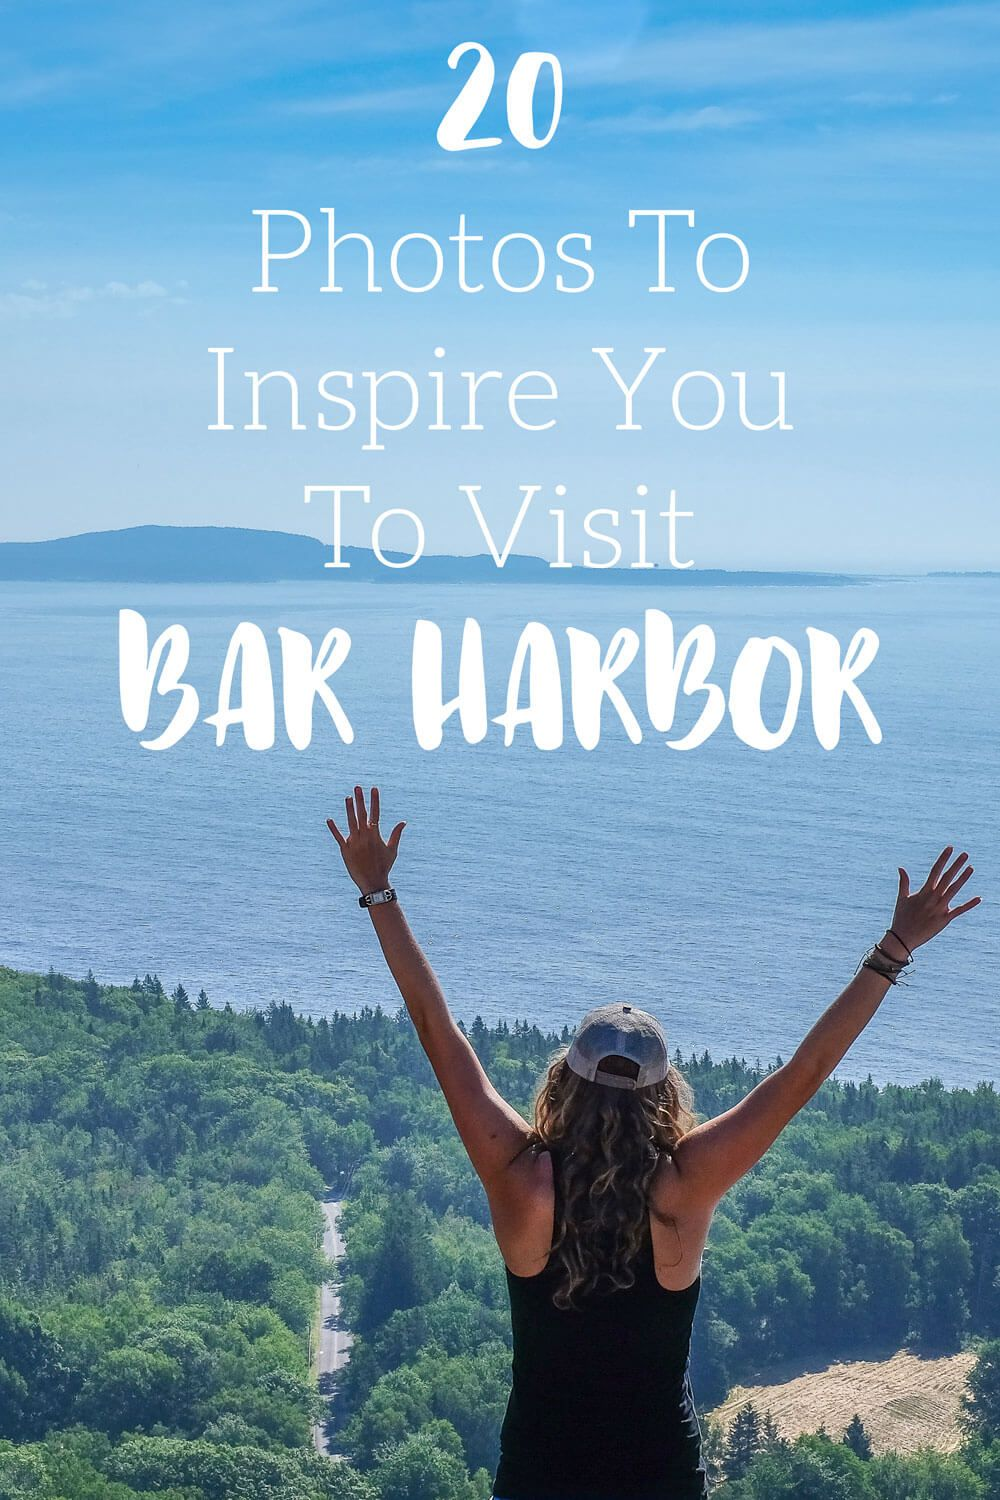 Interested in visiting Bar Harbor, Maine? Need more inspiration for your visit? Check out these photos of Bar Harbor to see the best of what this seaside town has to offer! Hiking, biking, mountaintop views, sea kayaking, and more.